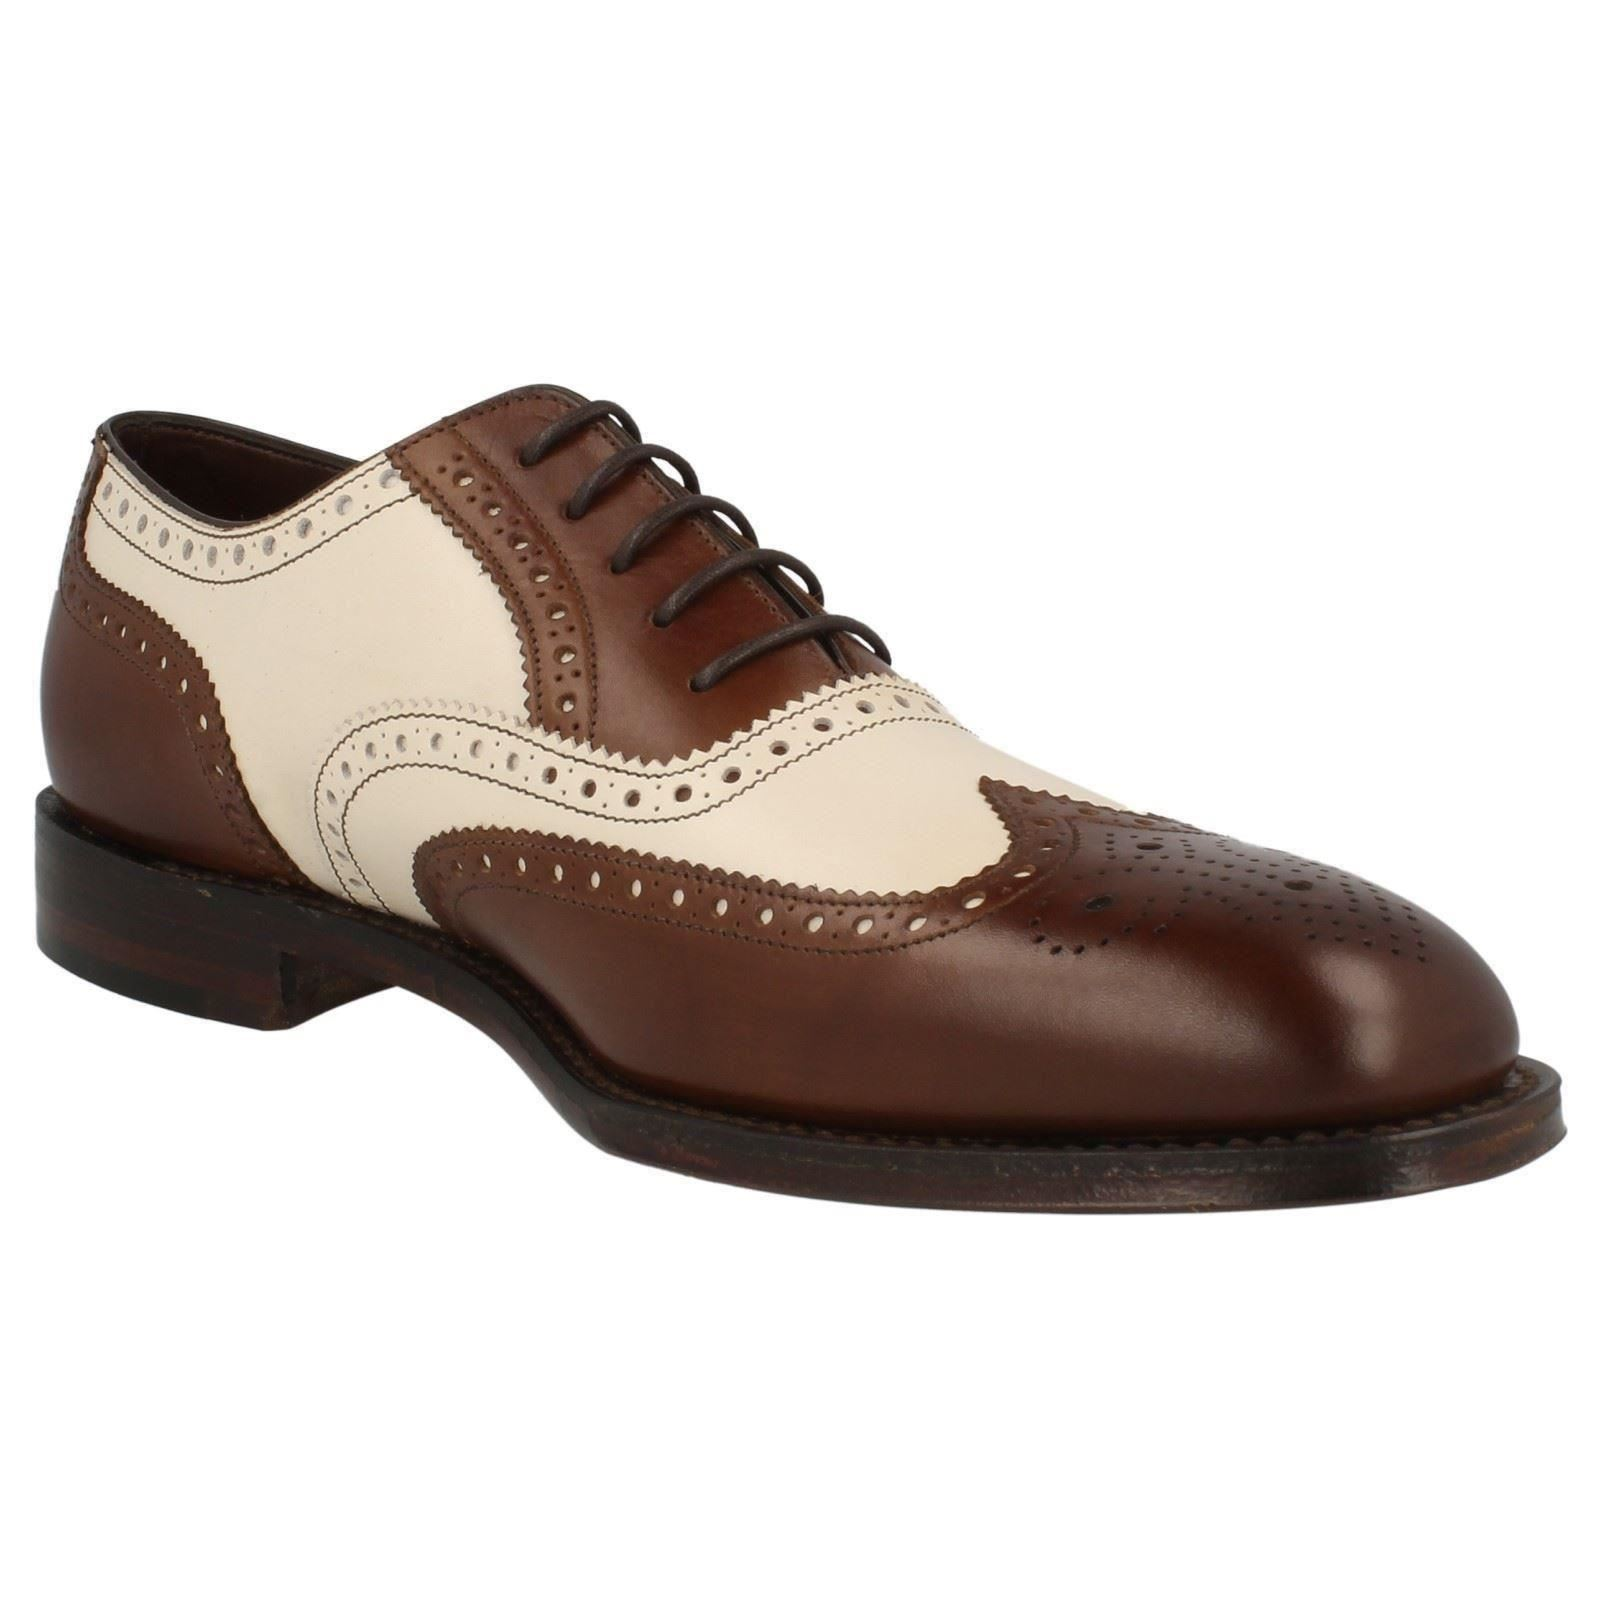 Loake Mens Shoes Offers